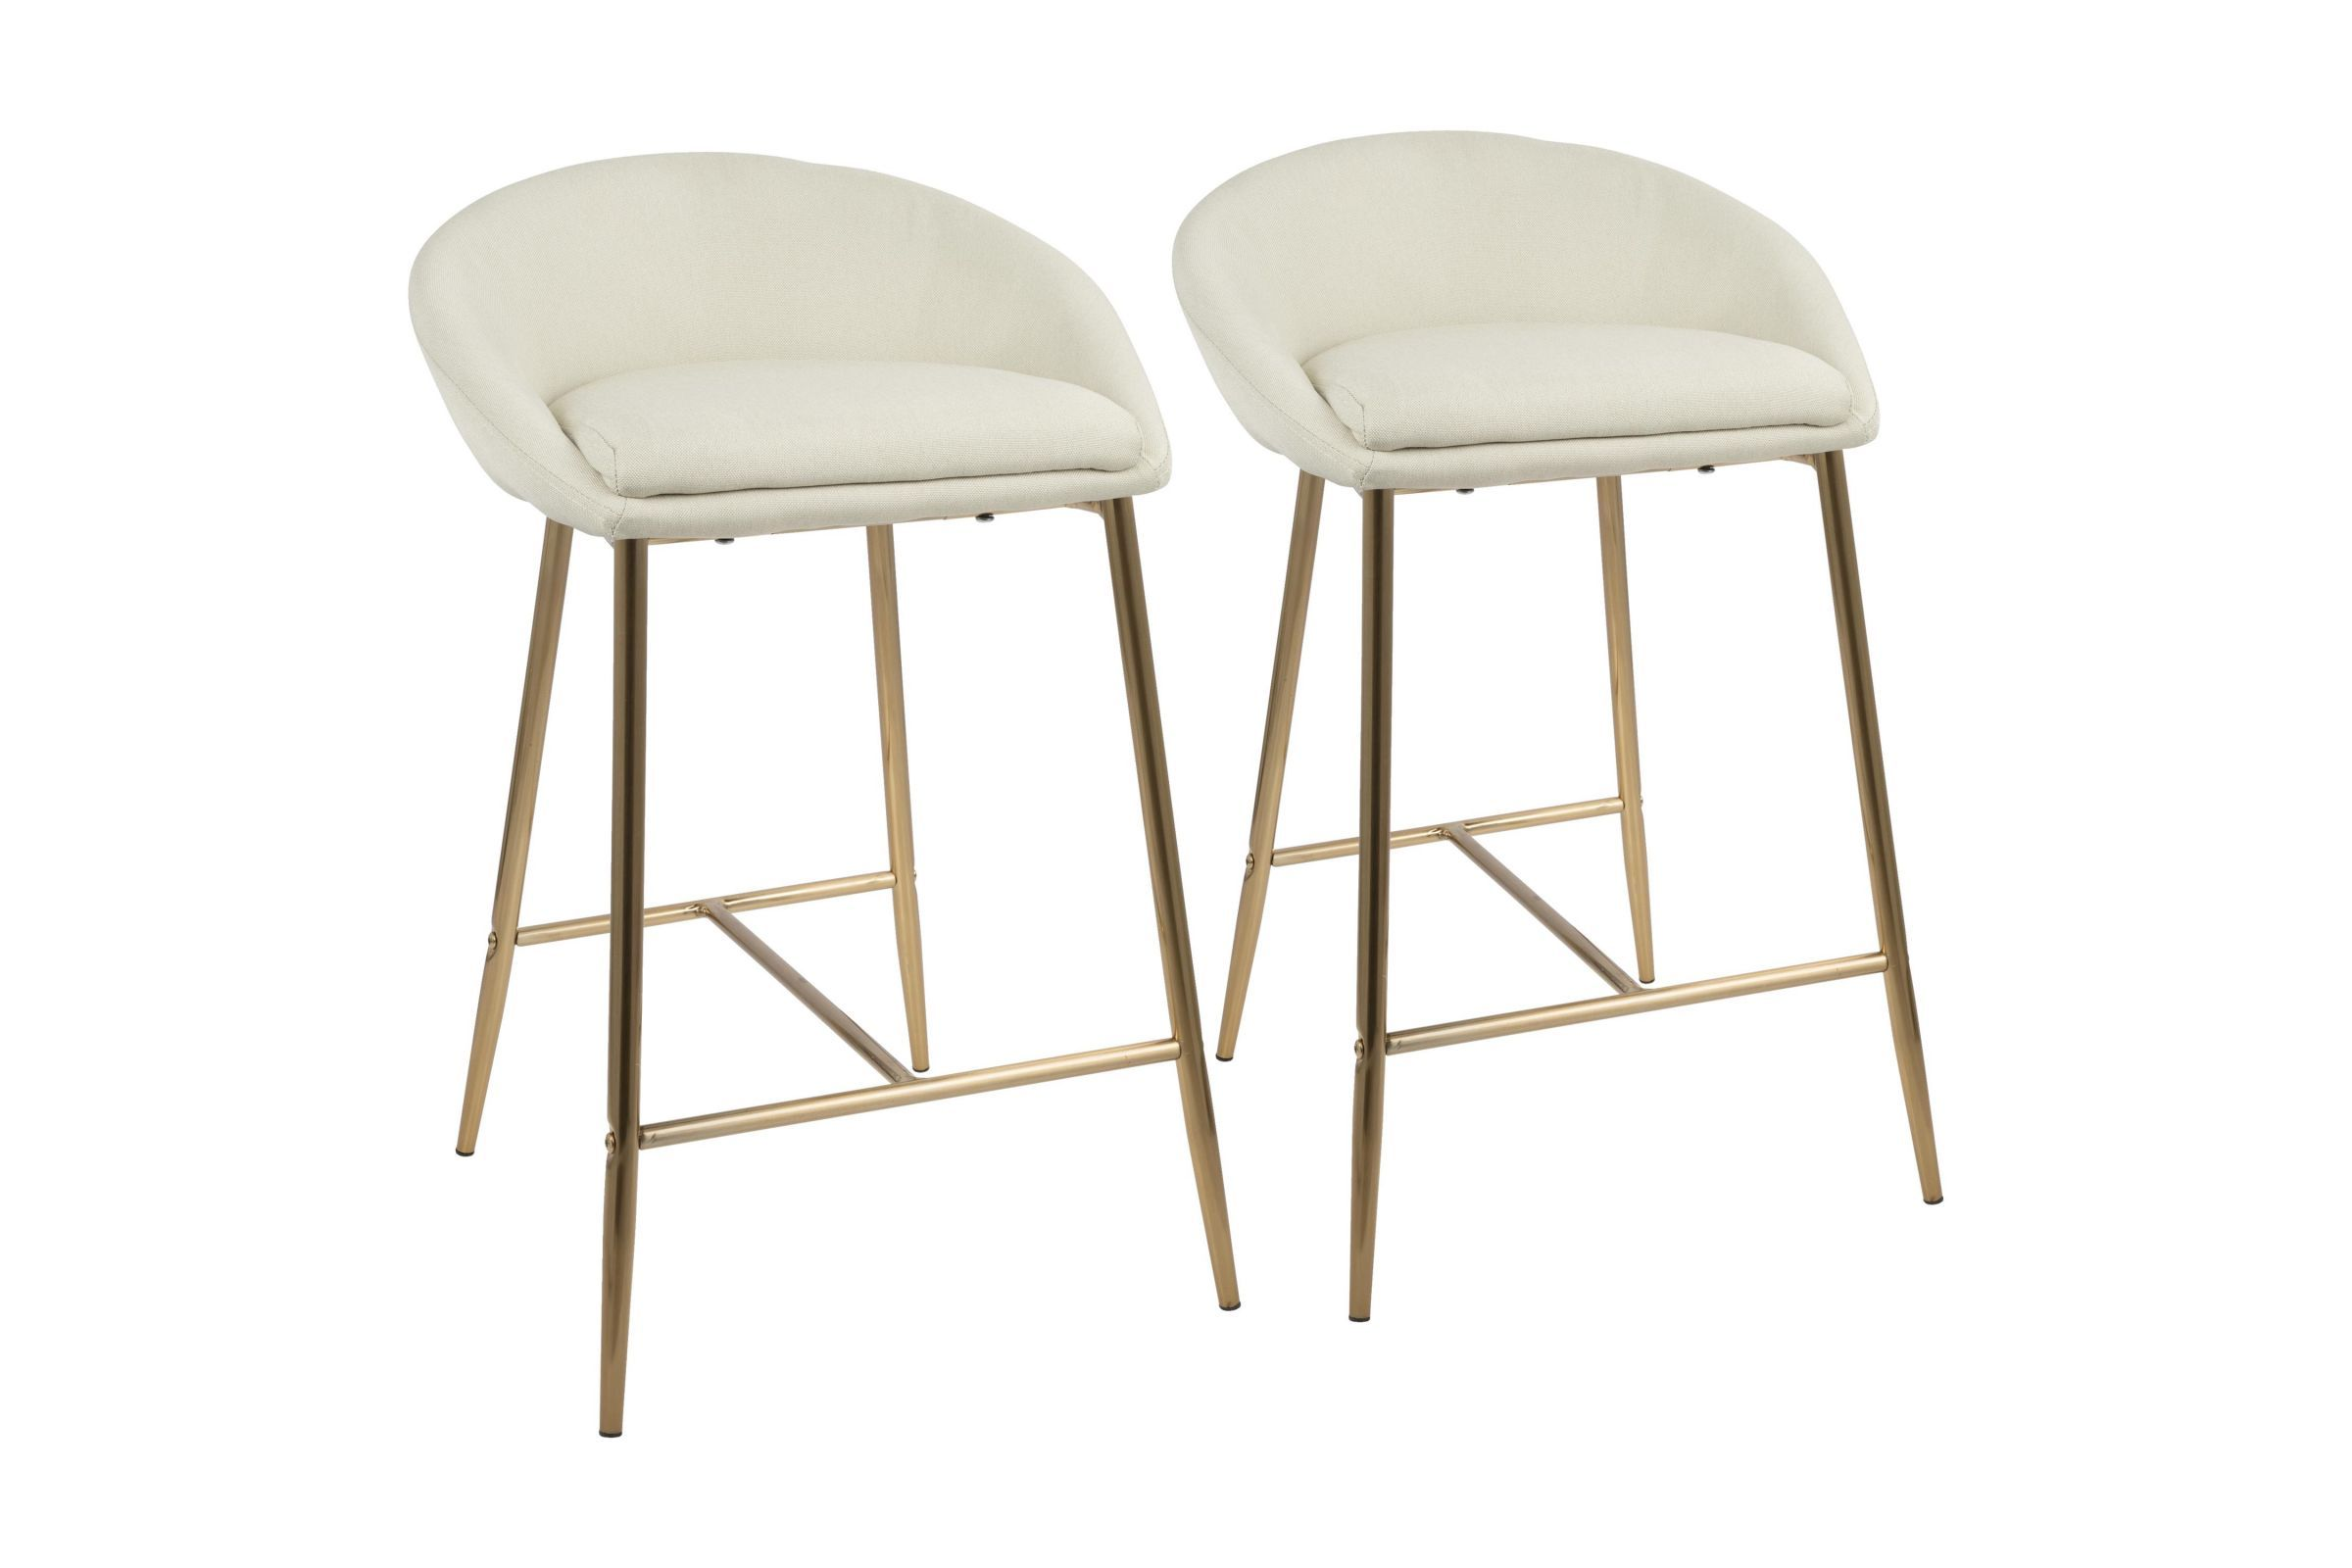 Prime Matisse Glam 26 Counter Stools Set Of 2 In Cream And Gold Evergreenethics Interior Chair Design Evergreenethicsorg